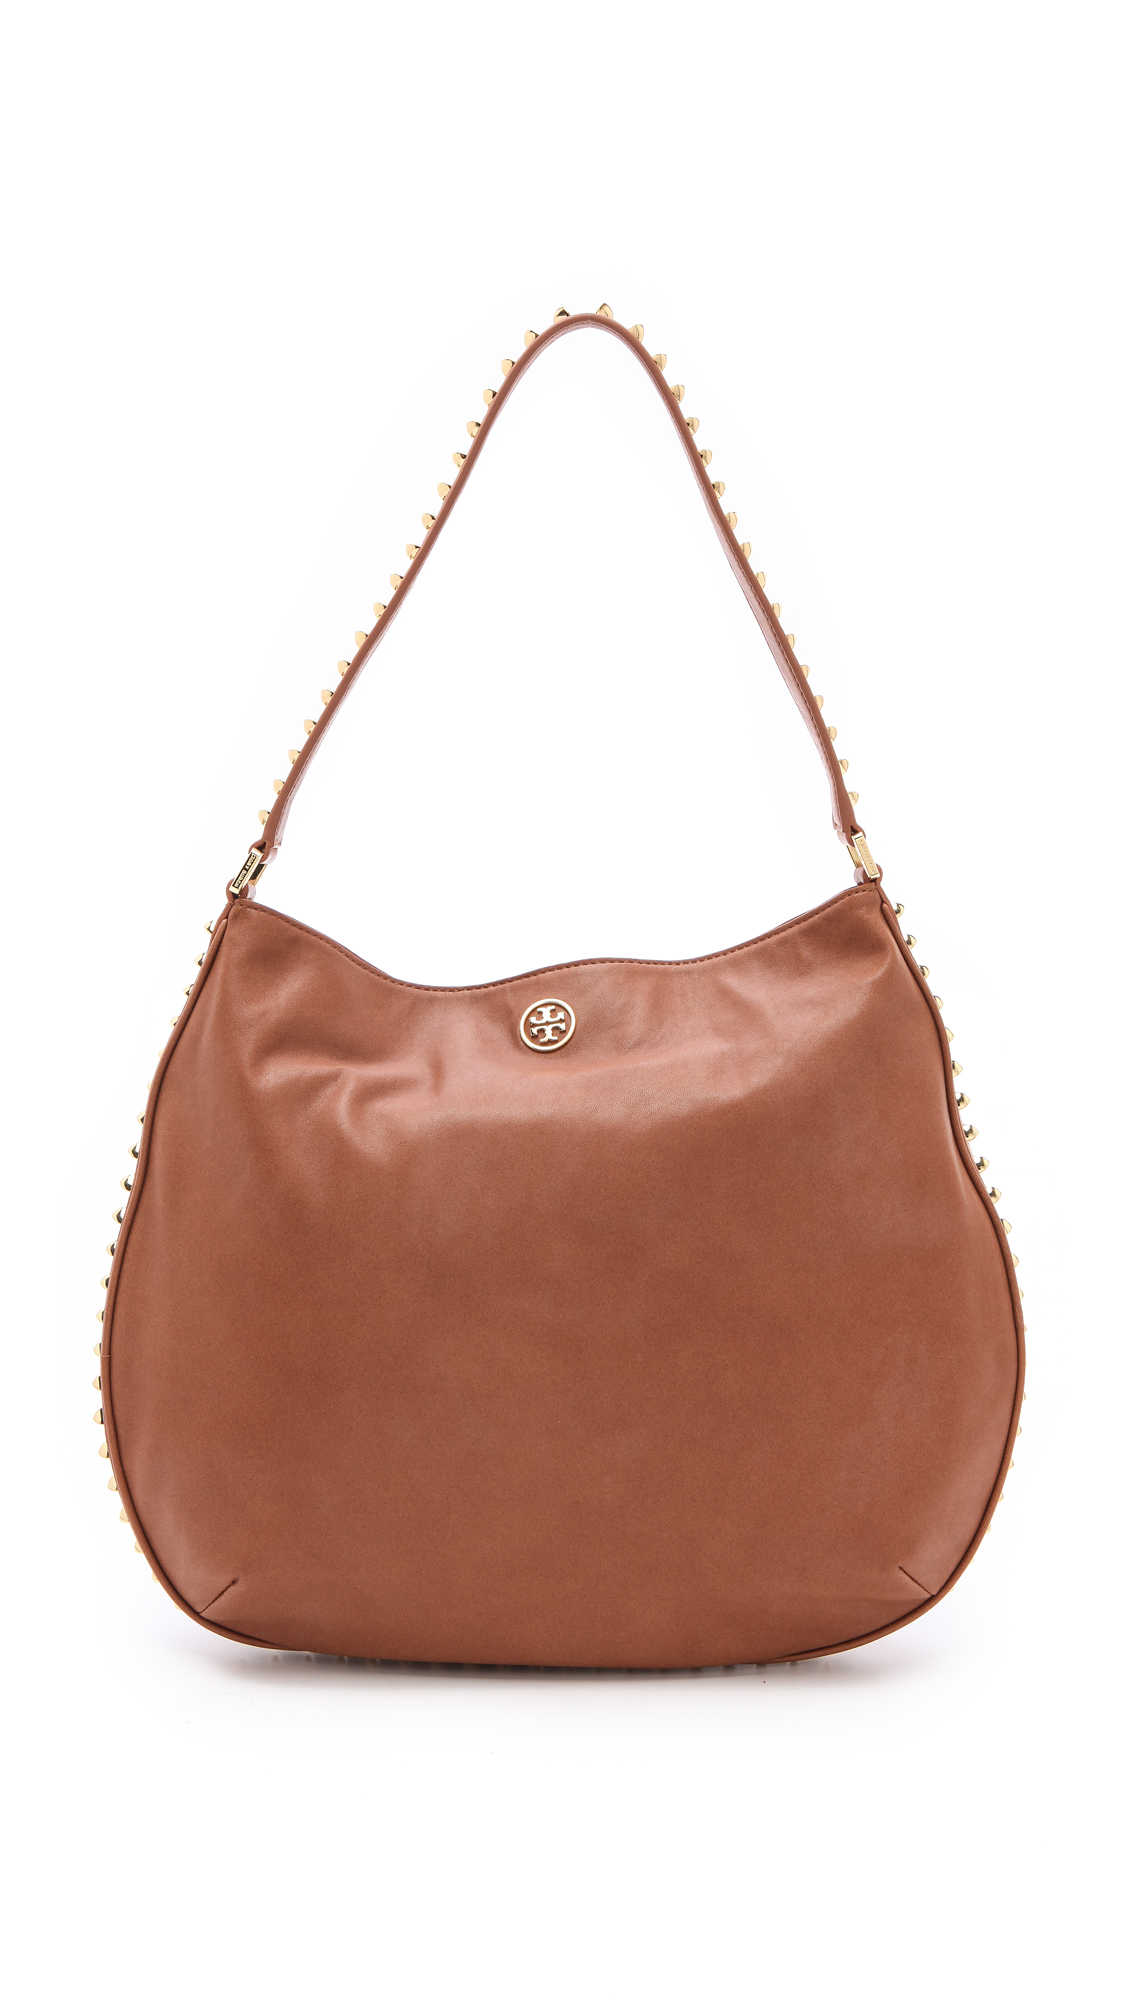 59037452a942 Lyst - Tory Burch Pyramid Stud Hobo in Brown